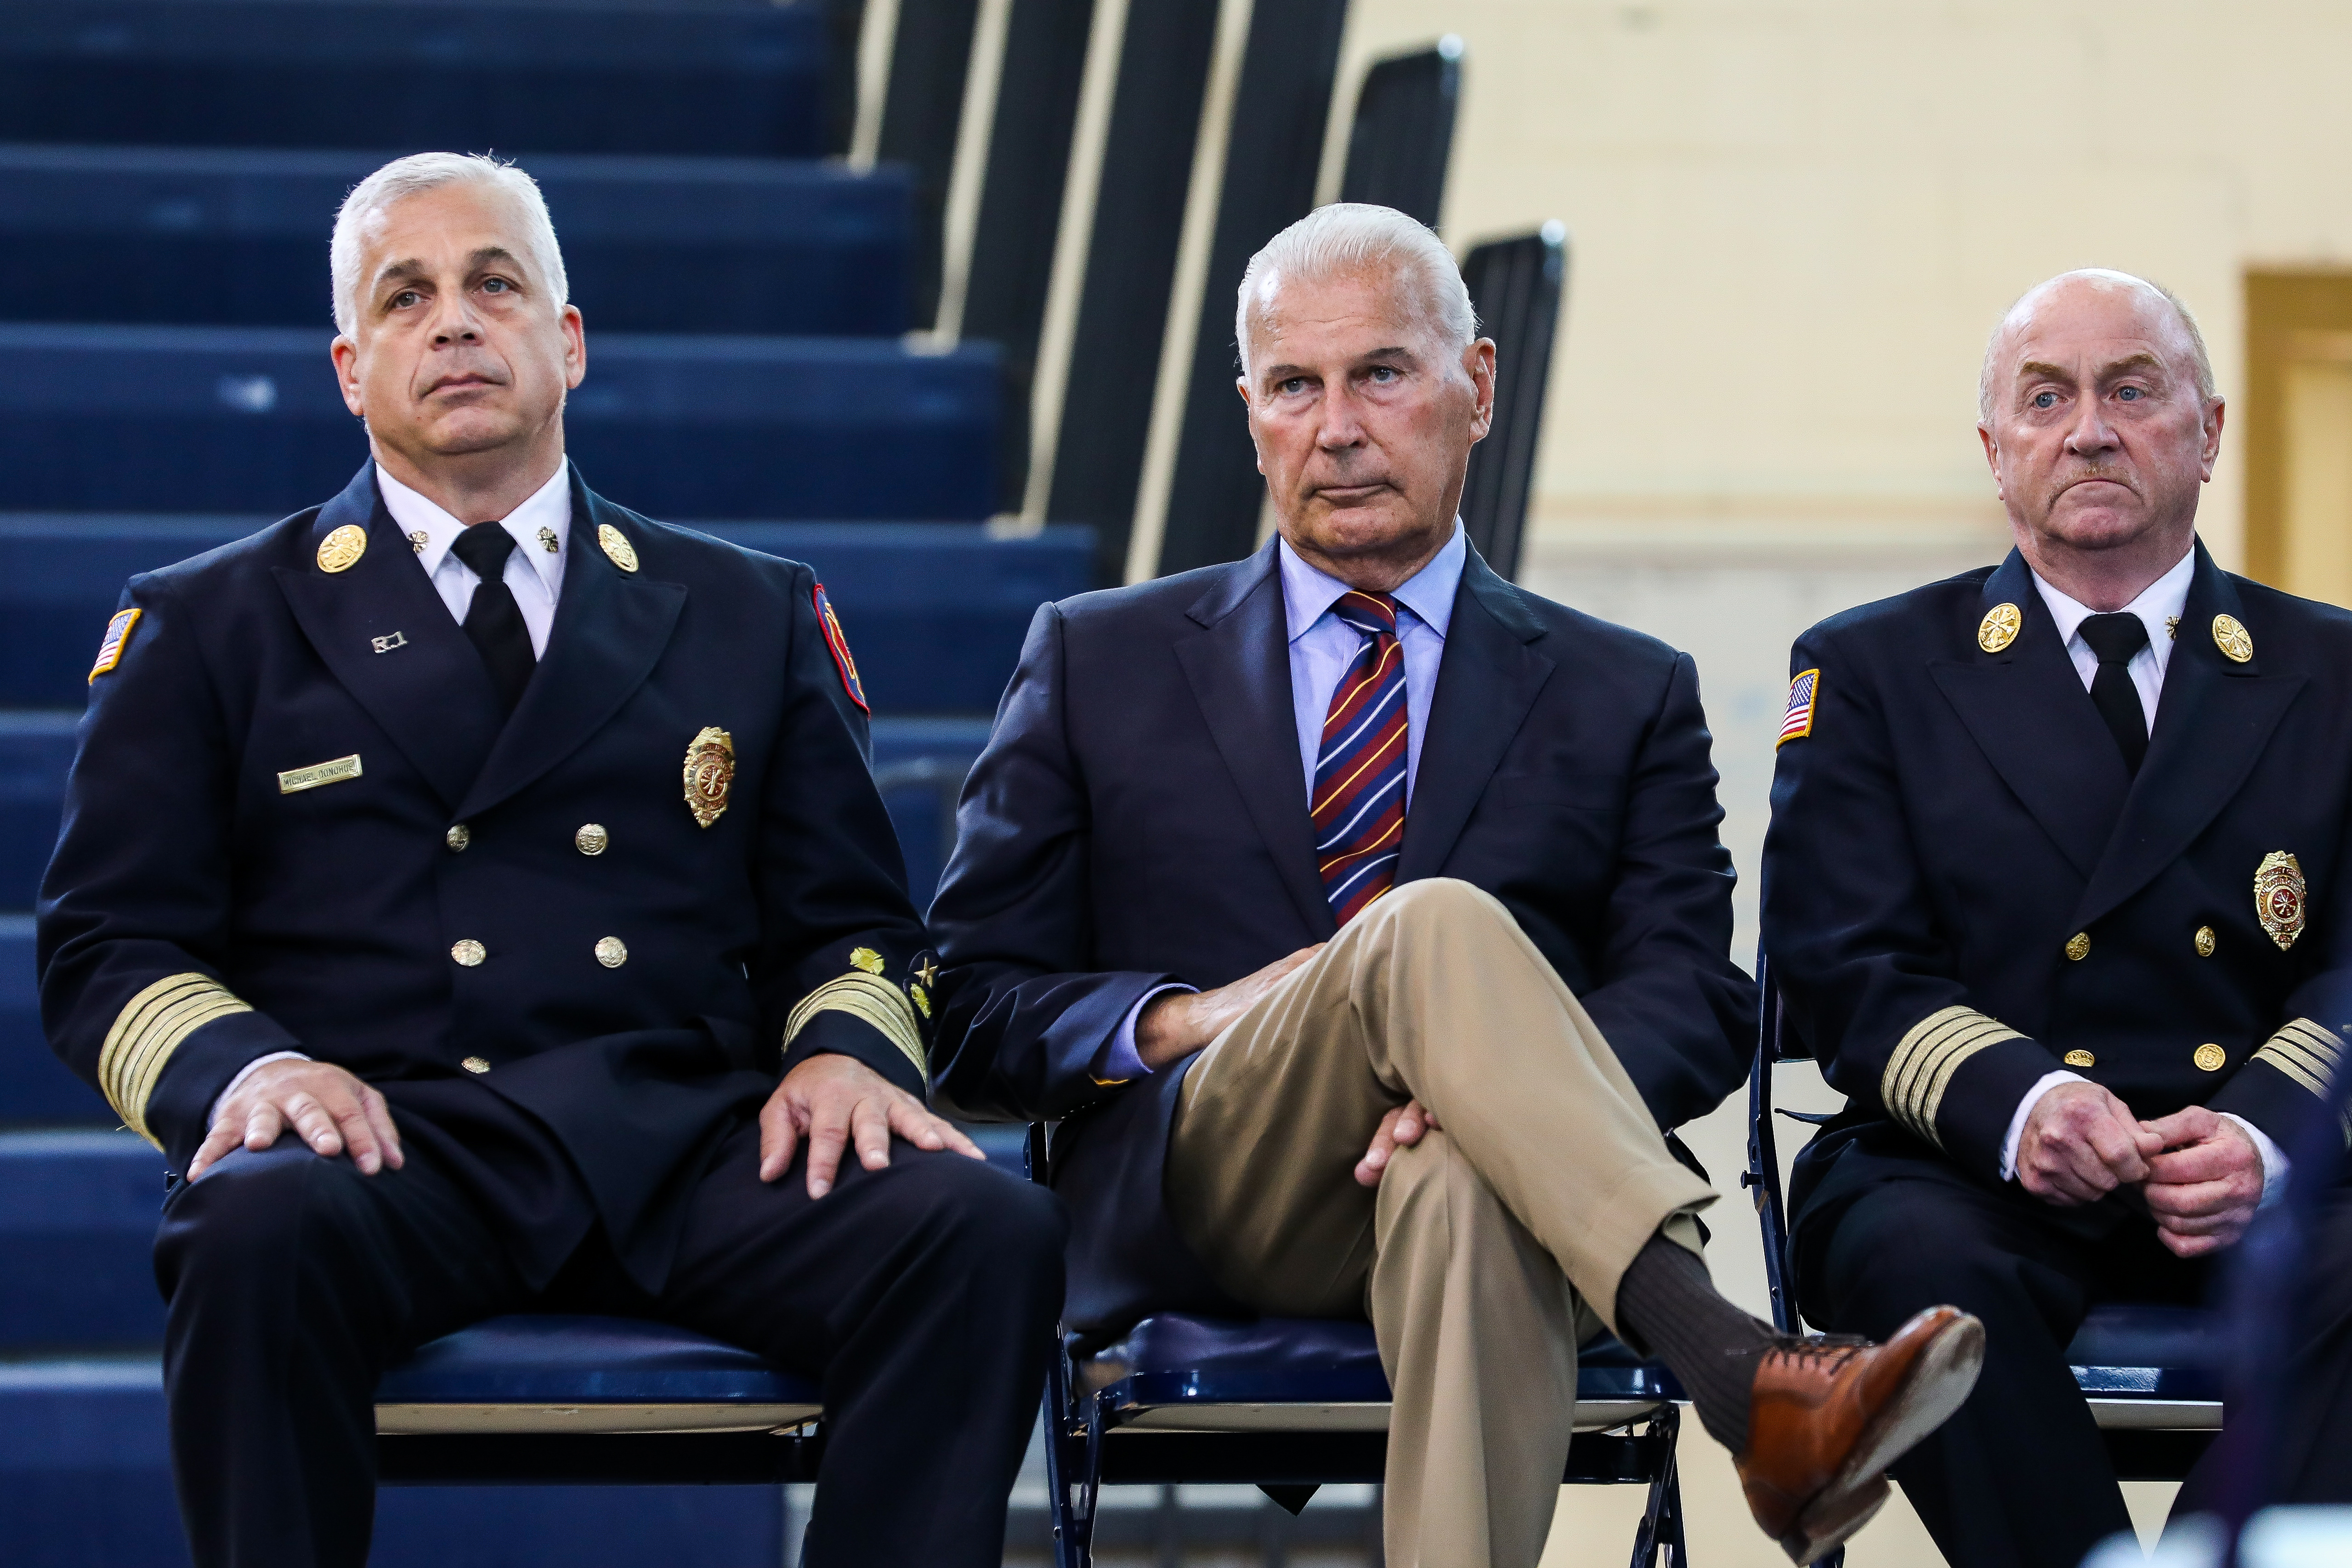 Fire Chief Michael Donohue, Wilmington Mayor Mike Purzycki and Wilmington Battalion Chief John M. Looney at the 40th Fire Academy Graduation